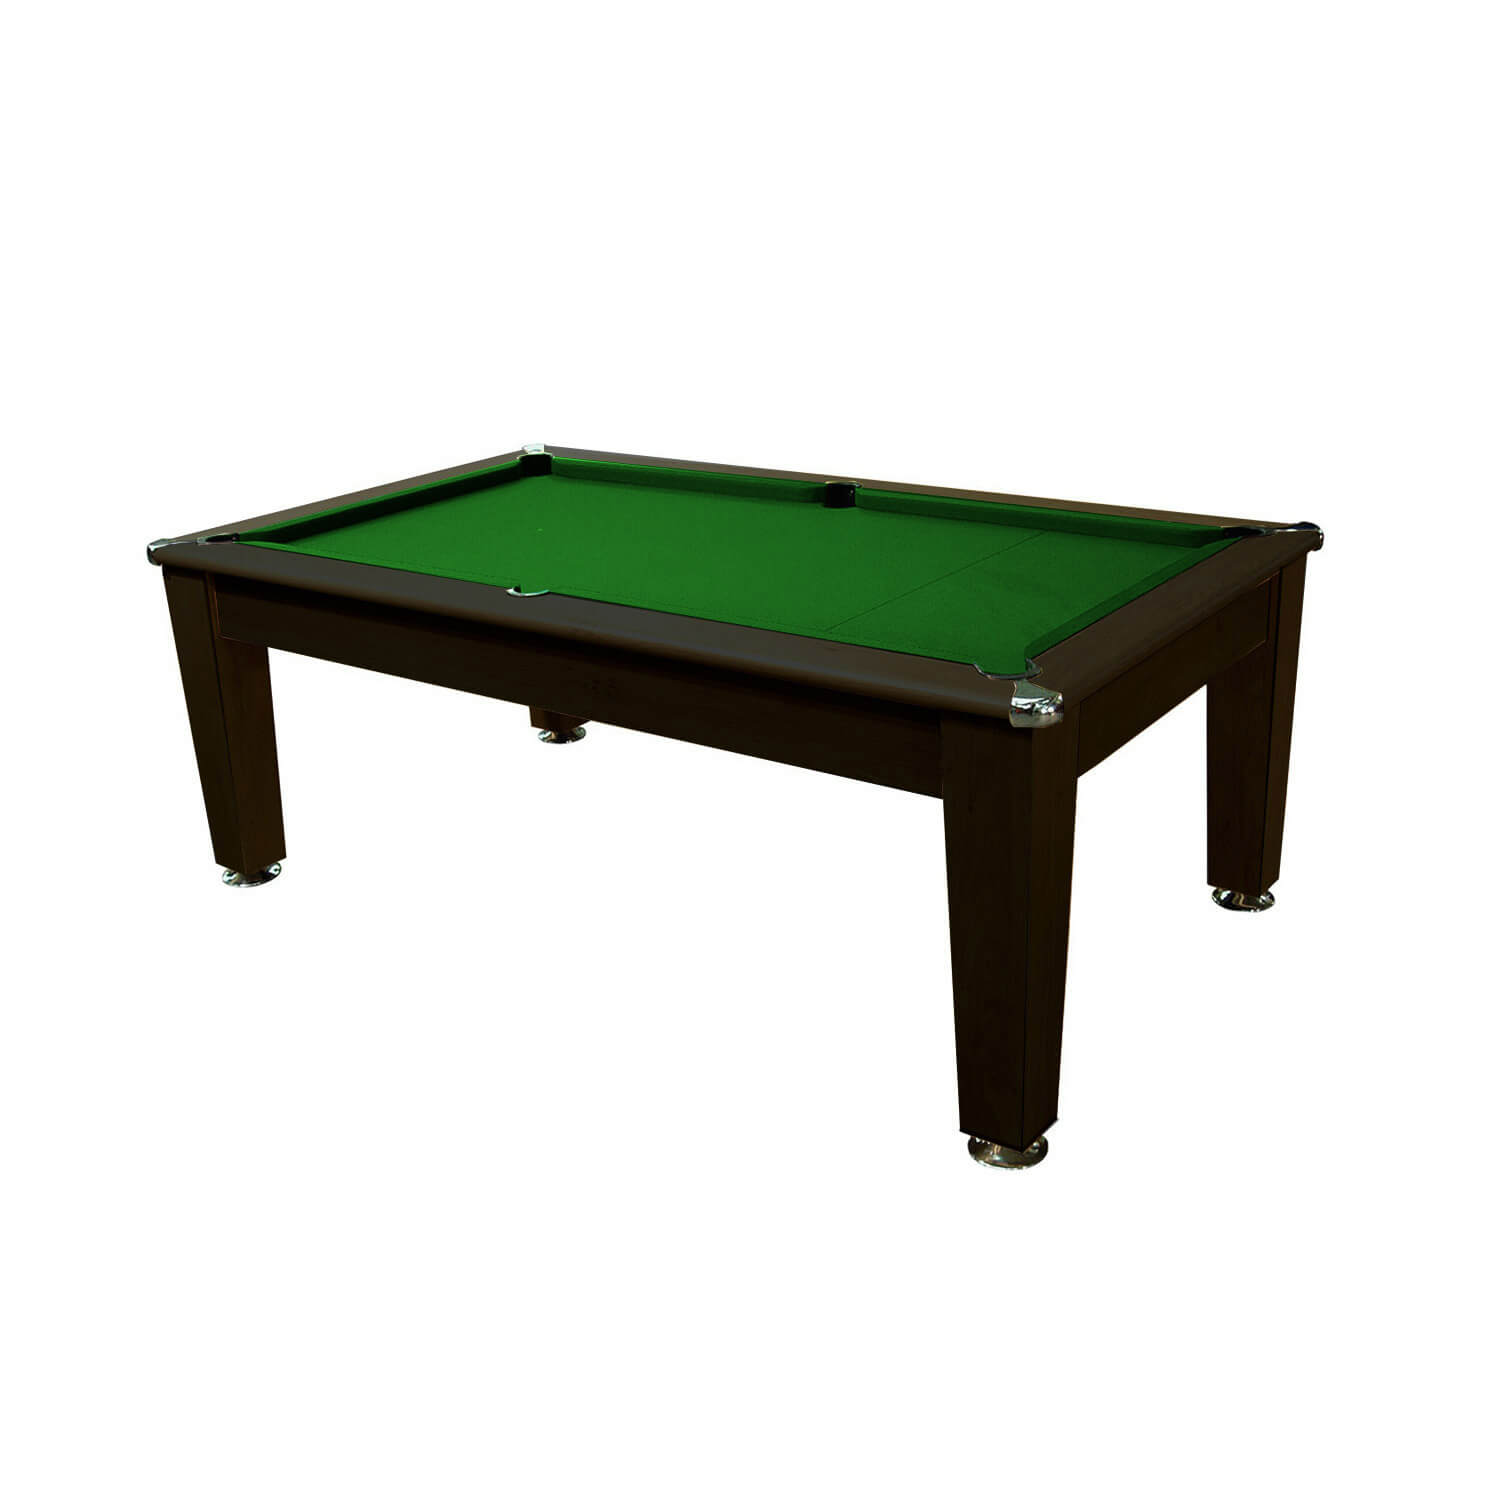 Roma Slate Bed Pool Dining Table - 6 ft, 7 ft : Liberty Games